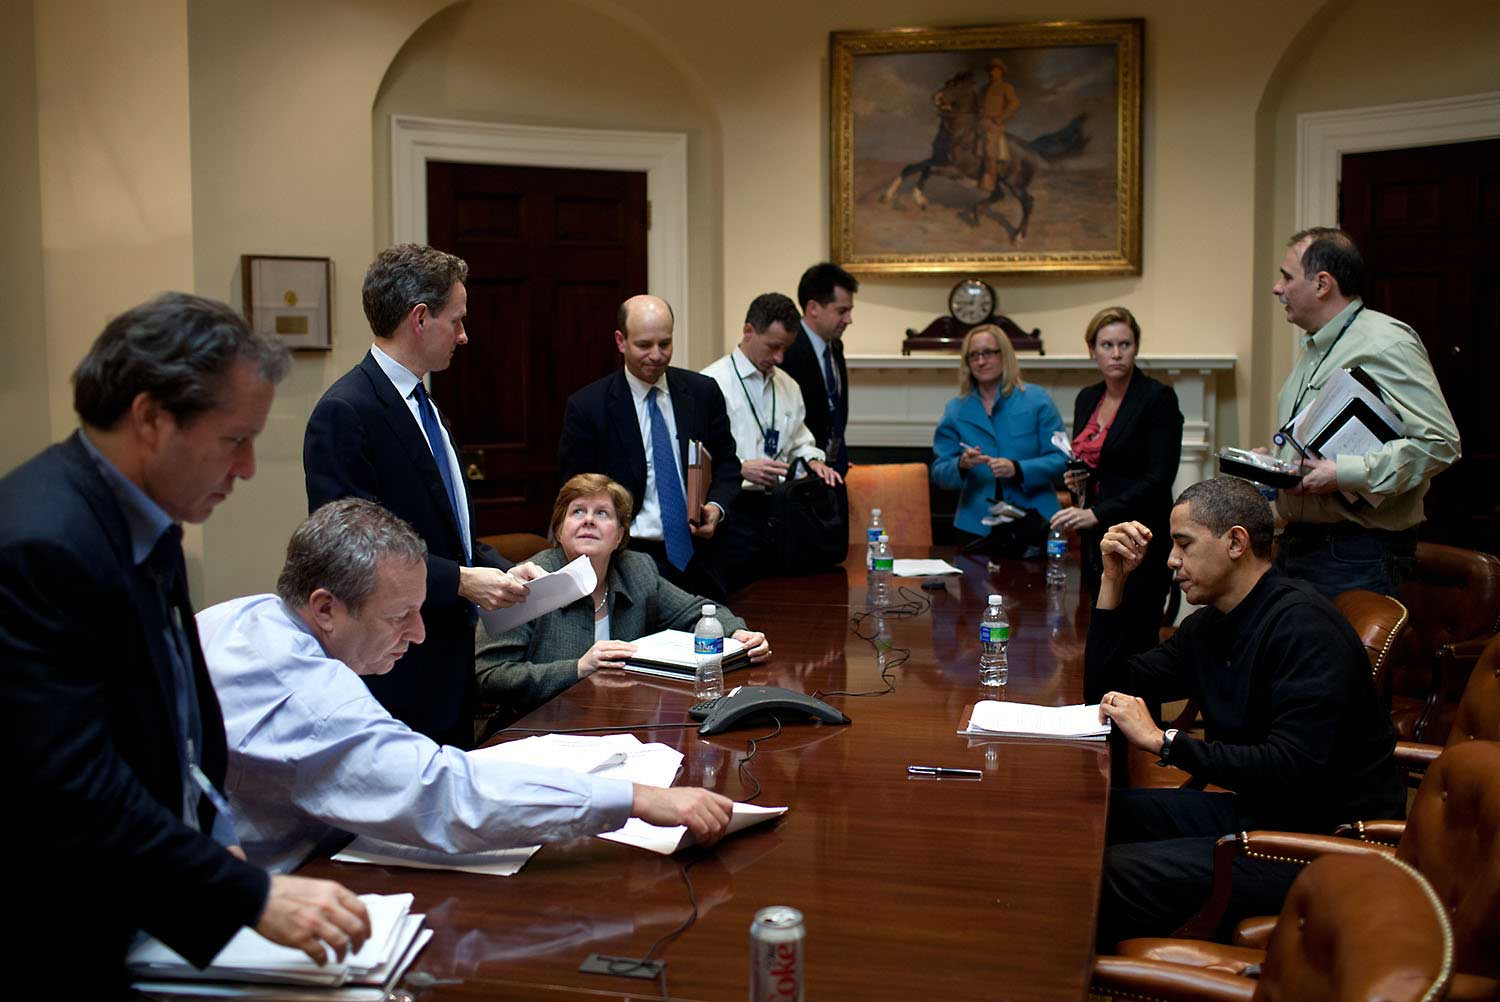 On a Saturday, the President meets with his economic advisors in the Roosevelt Room of the White House, March 15, 2009.